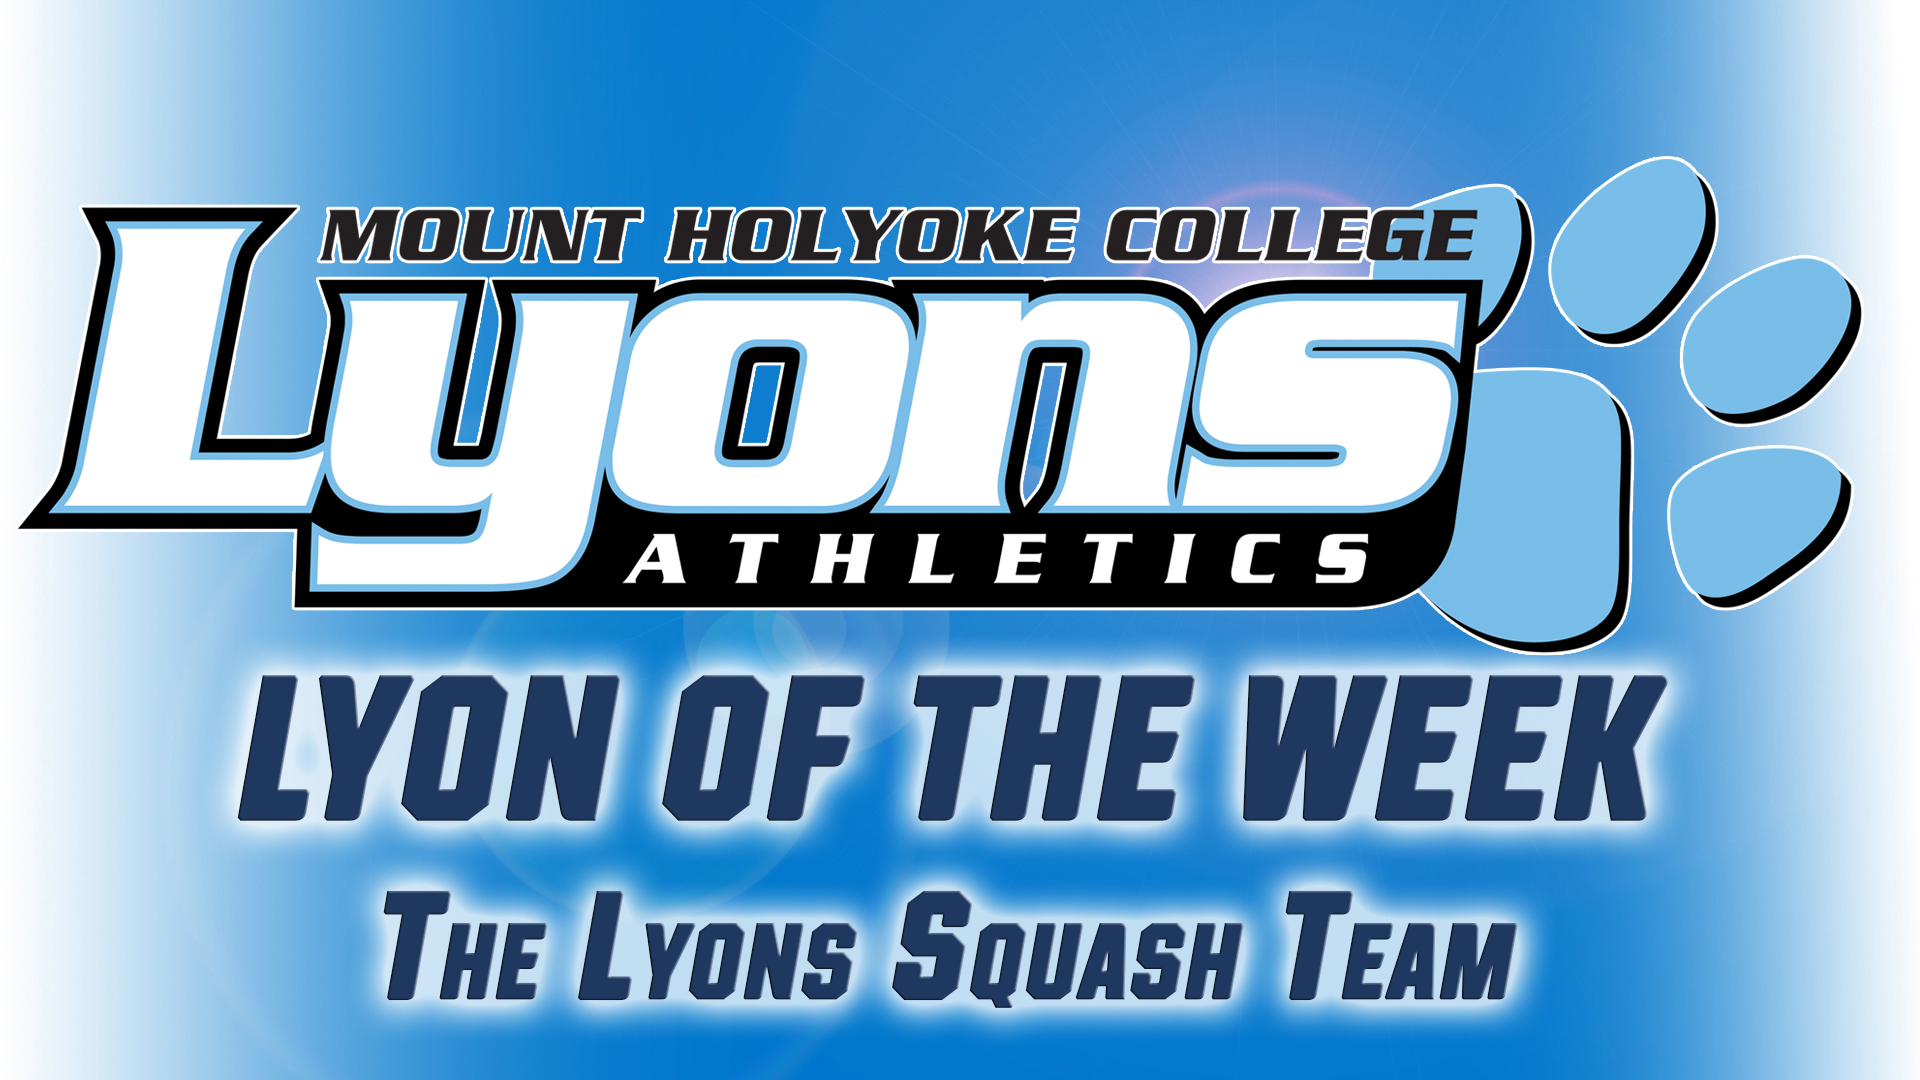 FEATURE: Lyon of the Week - Feb. 27th - The Squash Team